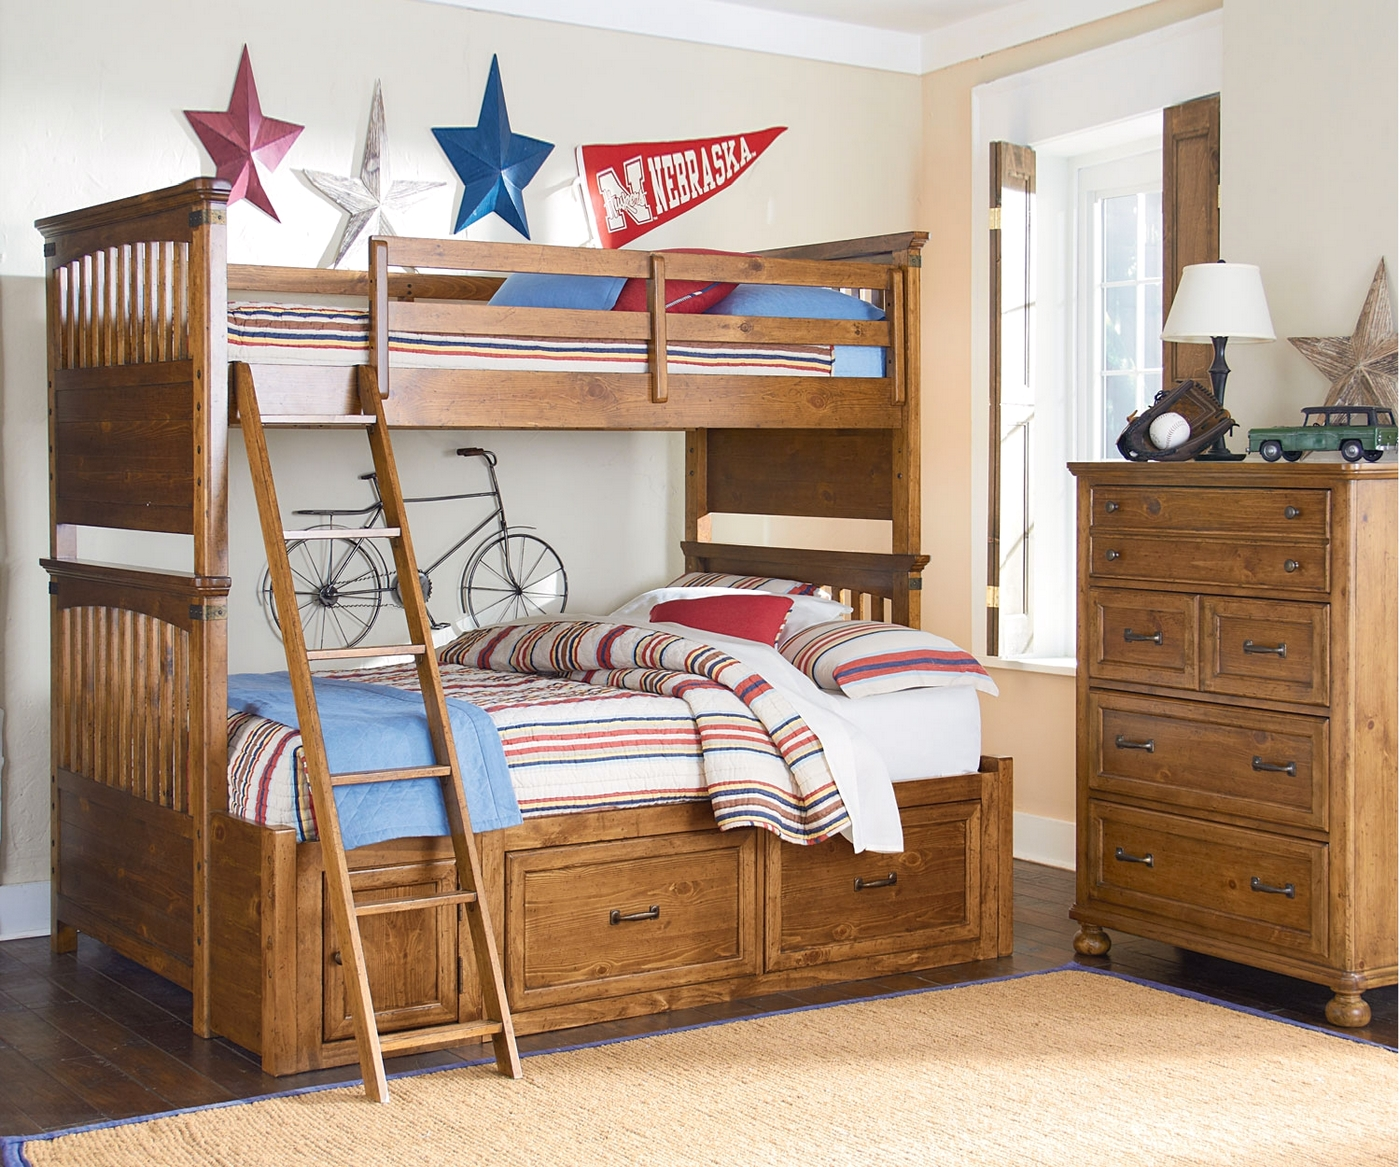 Bryce canyon heirloom pine twin over full bunk bed for Furniture of america pello full over full slatted bunk bed